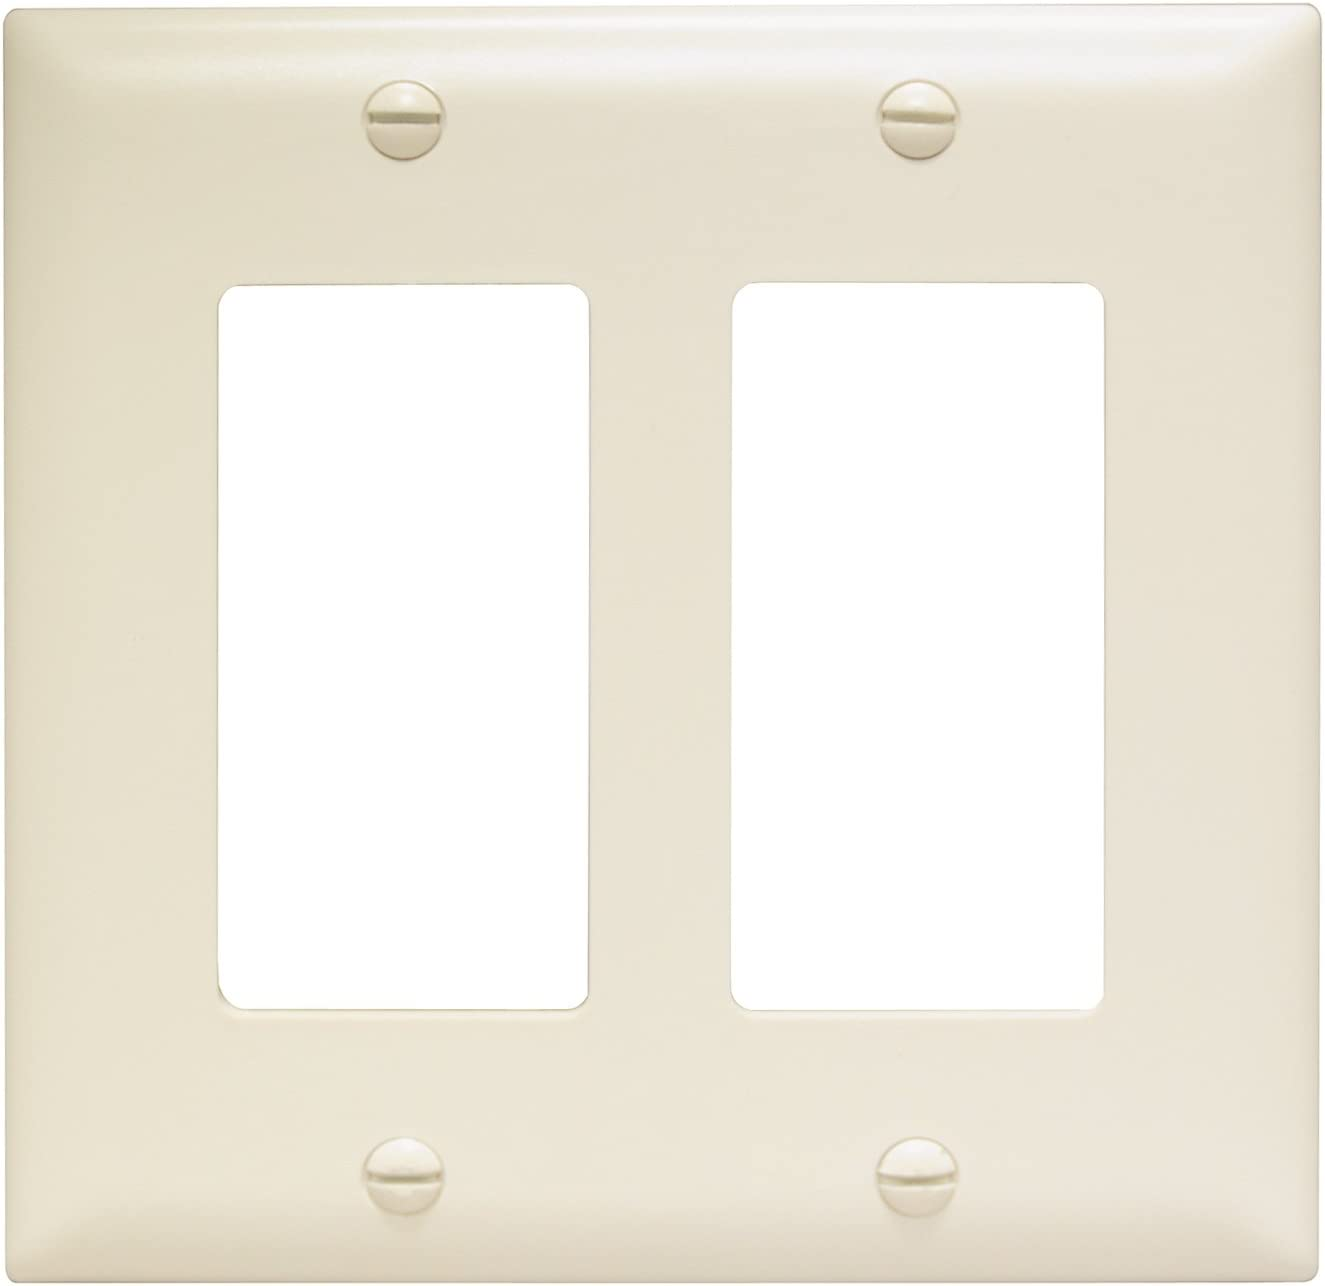 Legrand - Pass & Seymour TP262LACC30 Trade Master Nylon Wall Plate with Two Decorator Openings, Two Gang, Light Almond